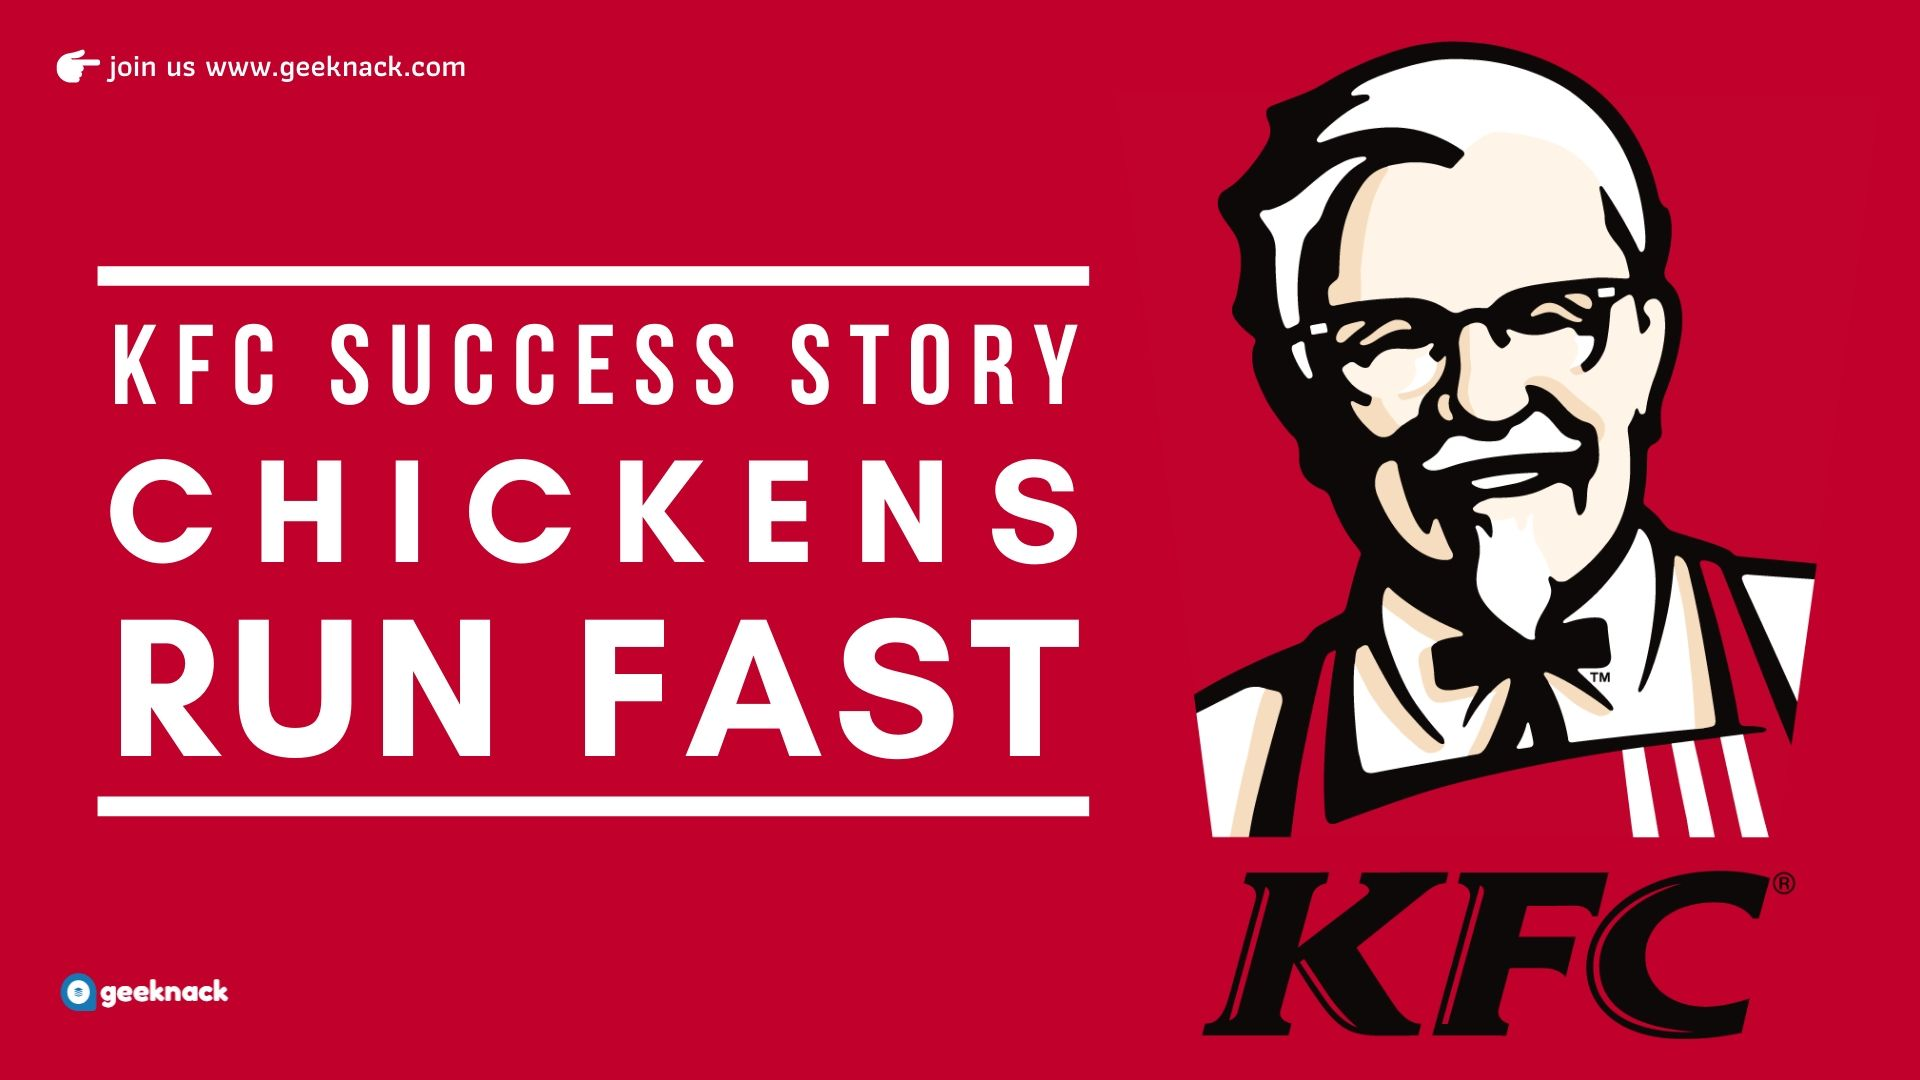 KFC Success Story Chickens Run Fast cover